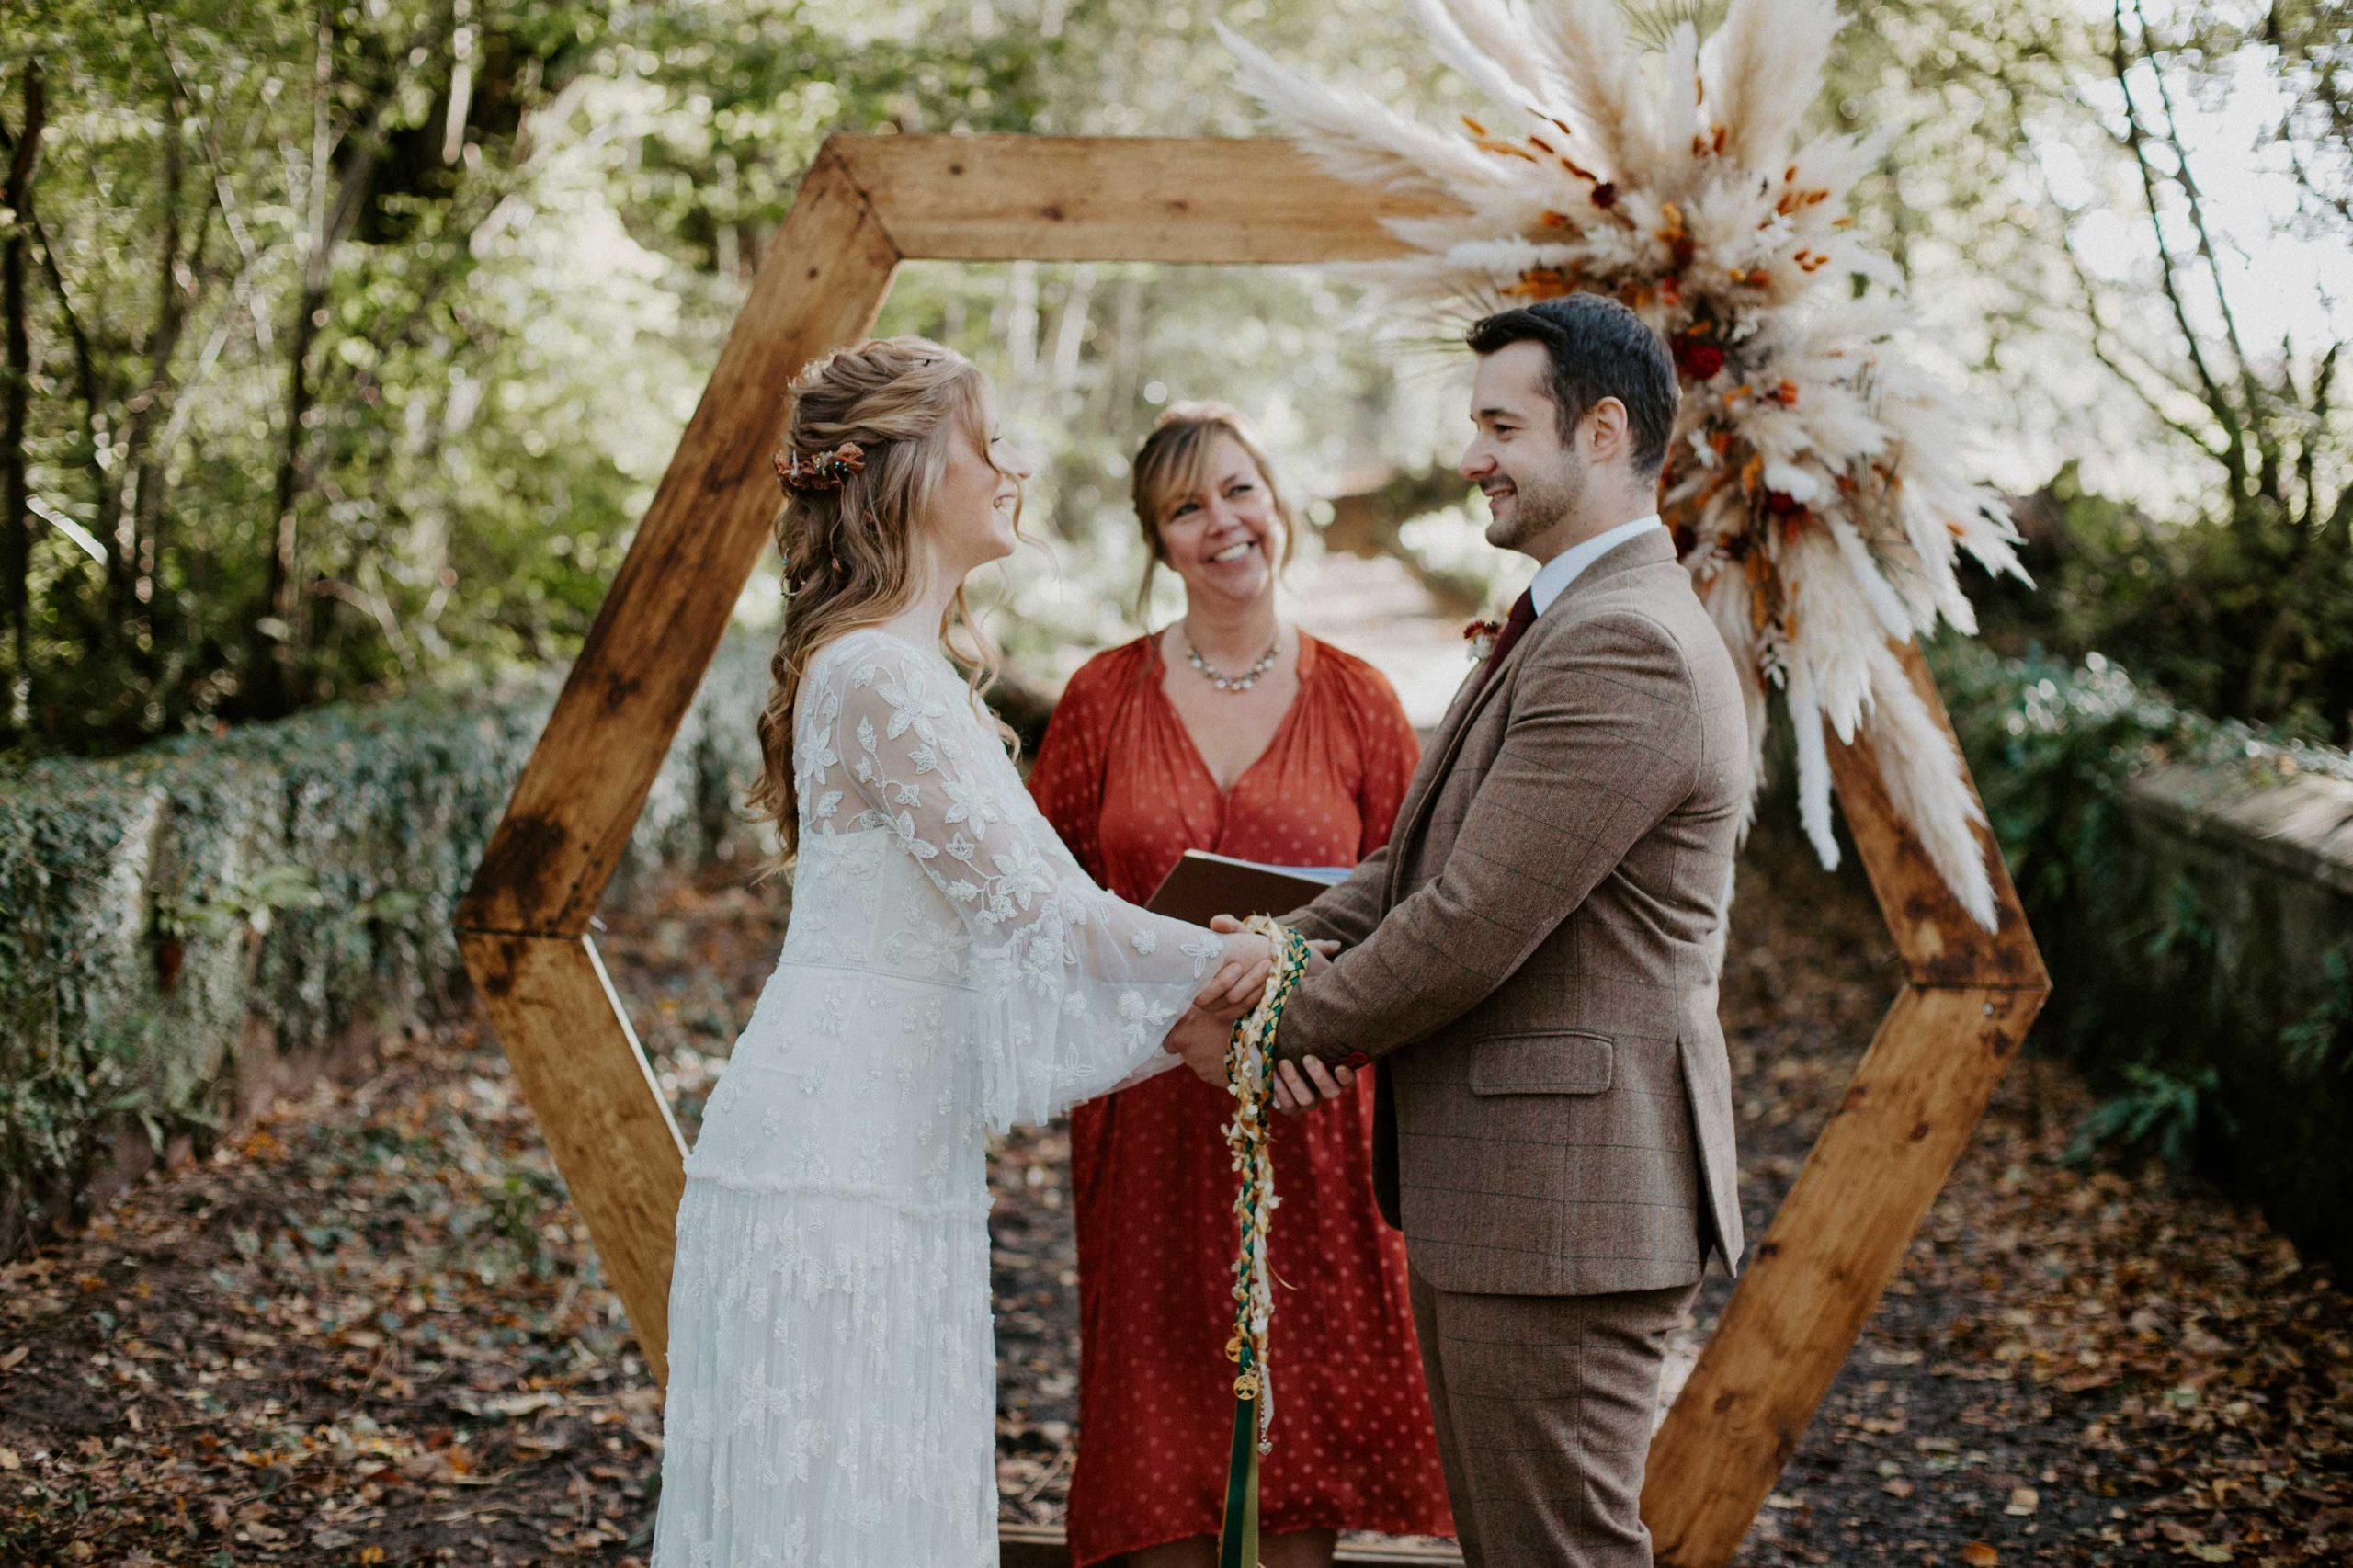 Autumn Wedding Ceremony Ideas and Inspiration